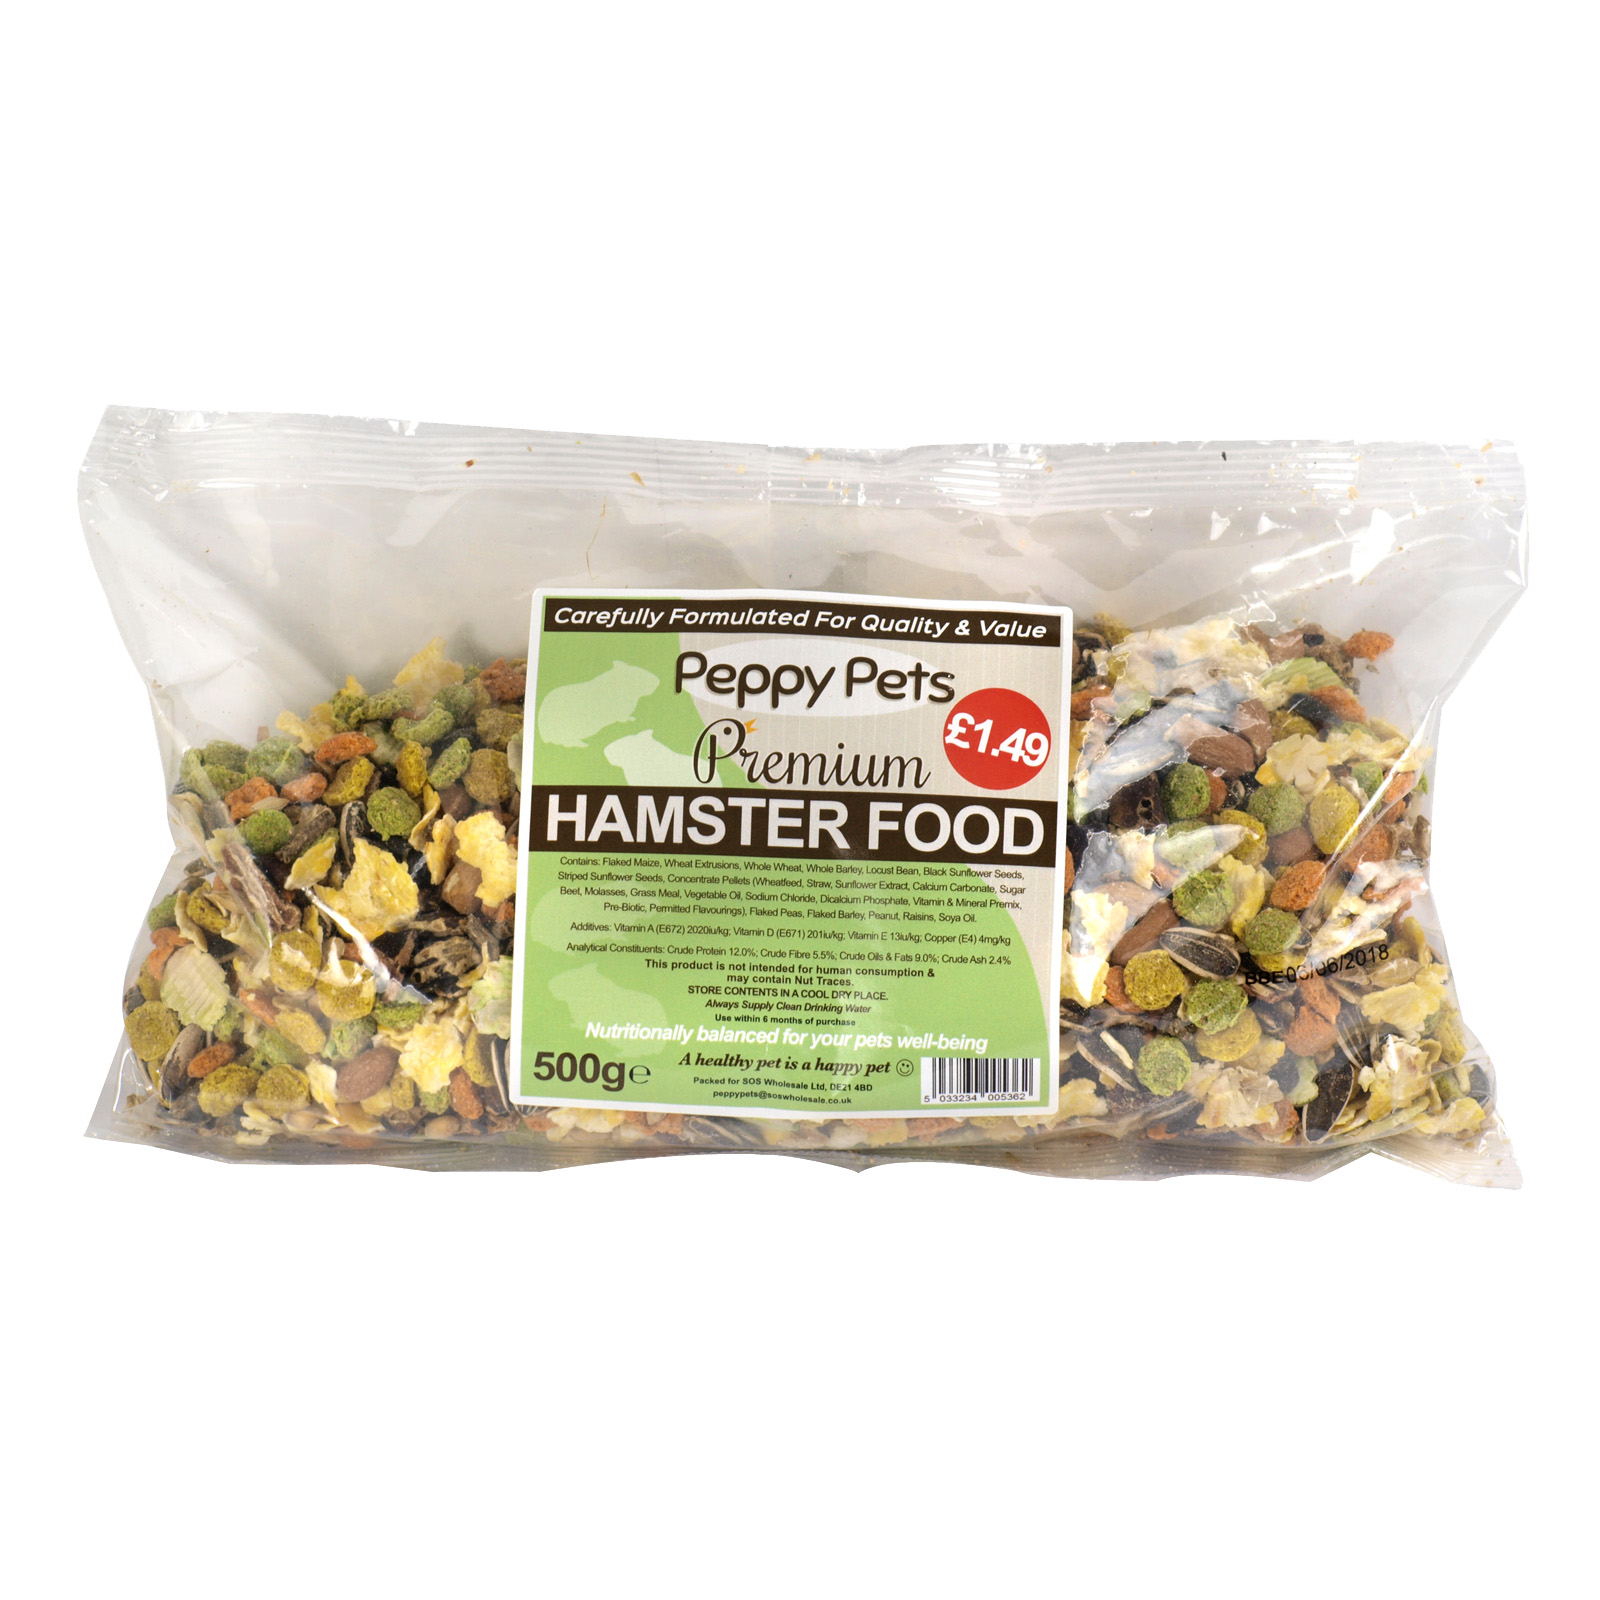 PEPPY PETS HAMSTER FOOD PM?1.49 500GM